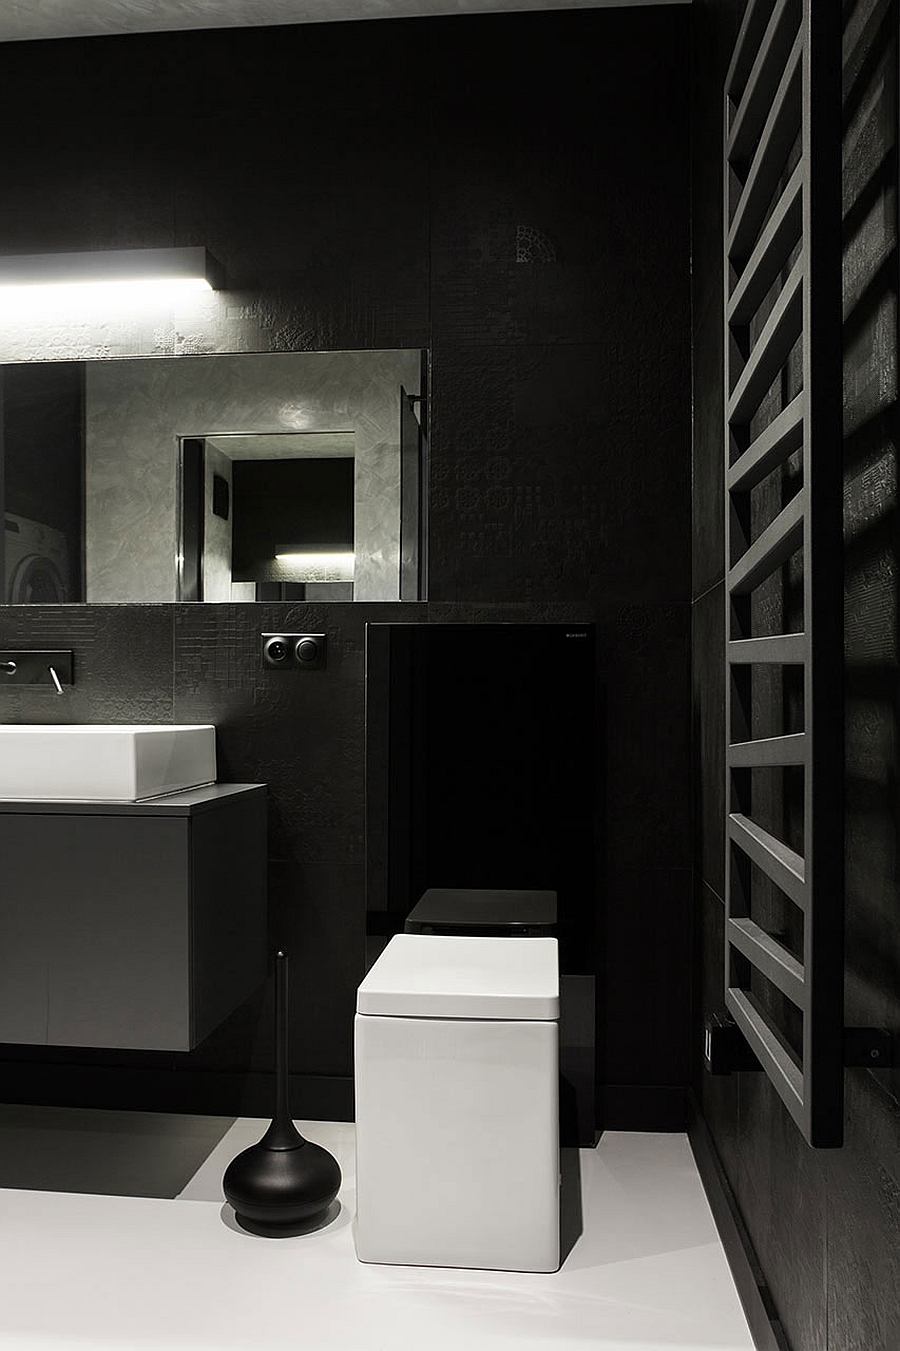 Smart black and white bathroom with sophisticated minimalism